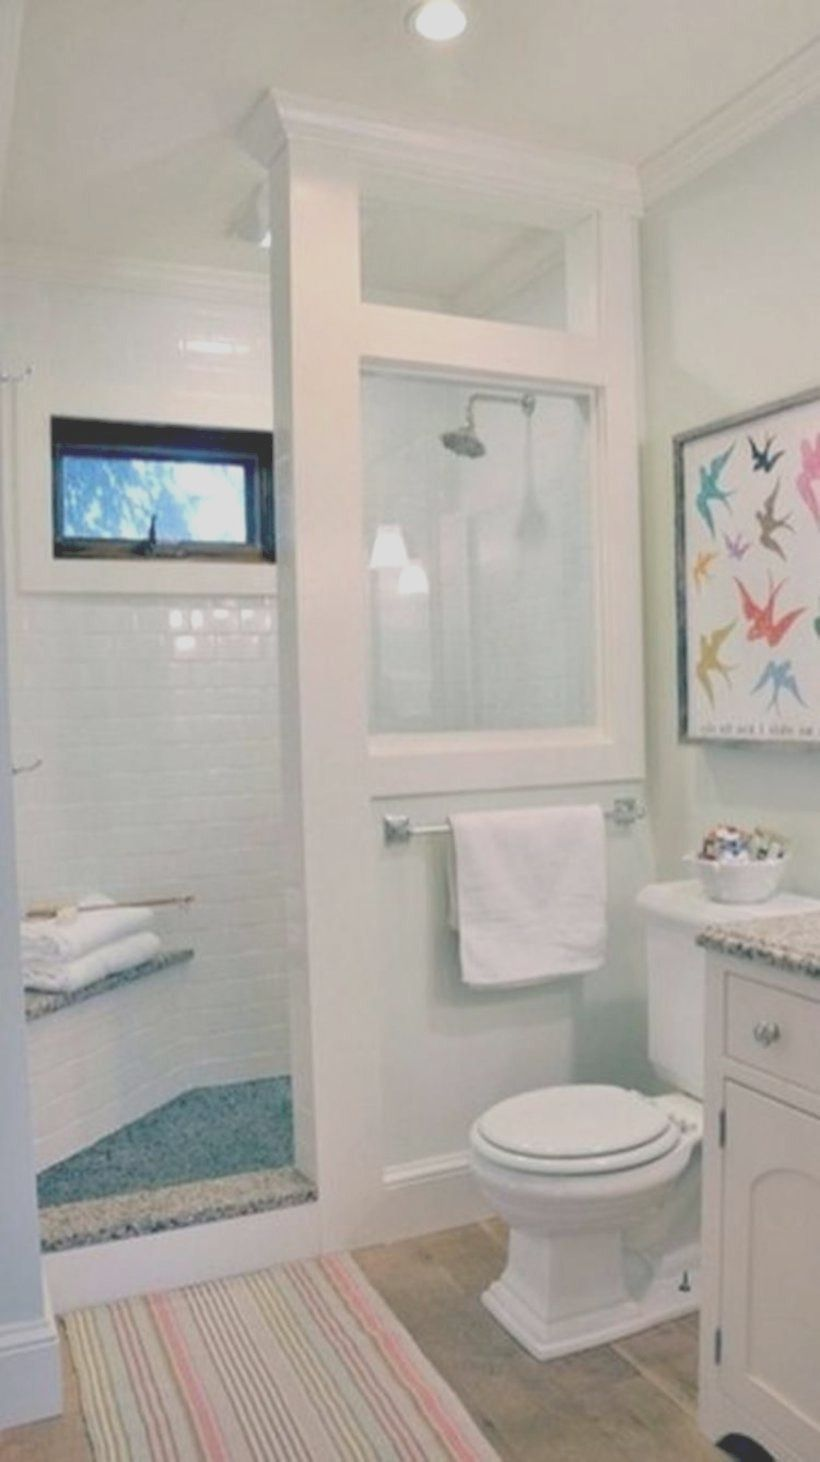 20 Incredible Small Bathroom Remodel Ideas For You Bathroom Design Top Bathroom Design Bathroom Remodel Master Bathroom shower ideas designs